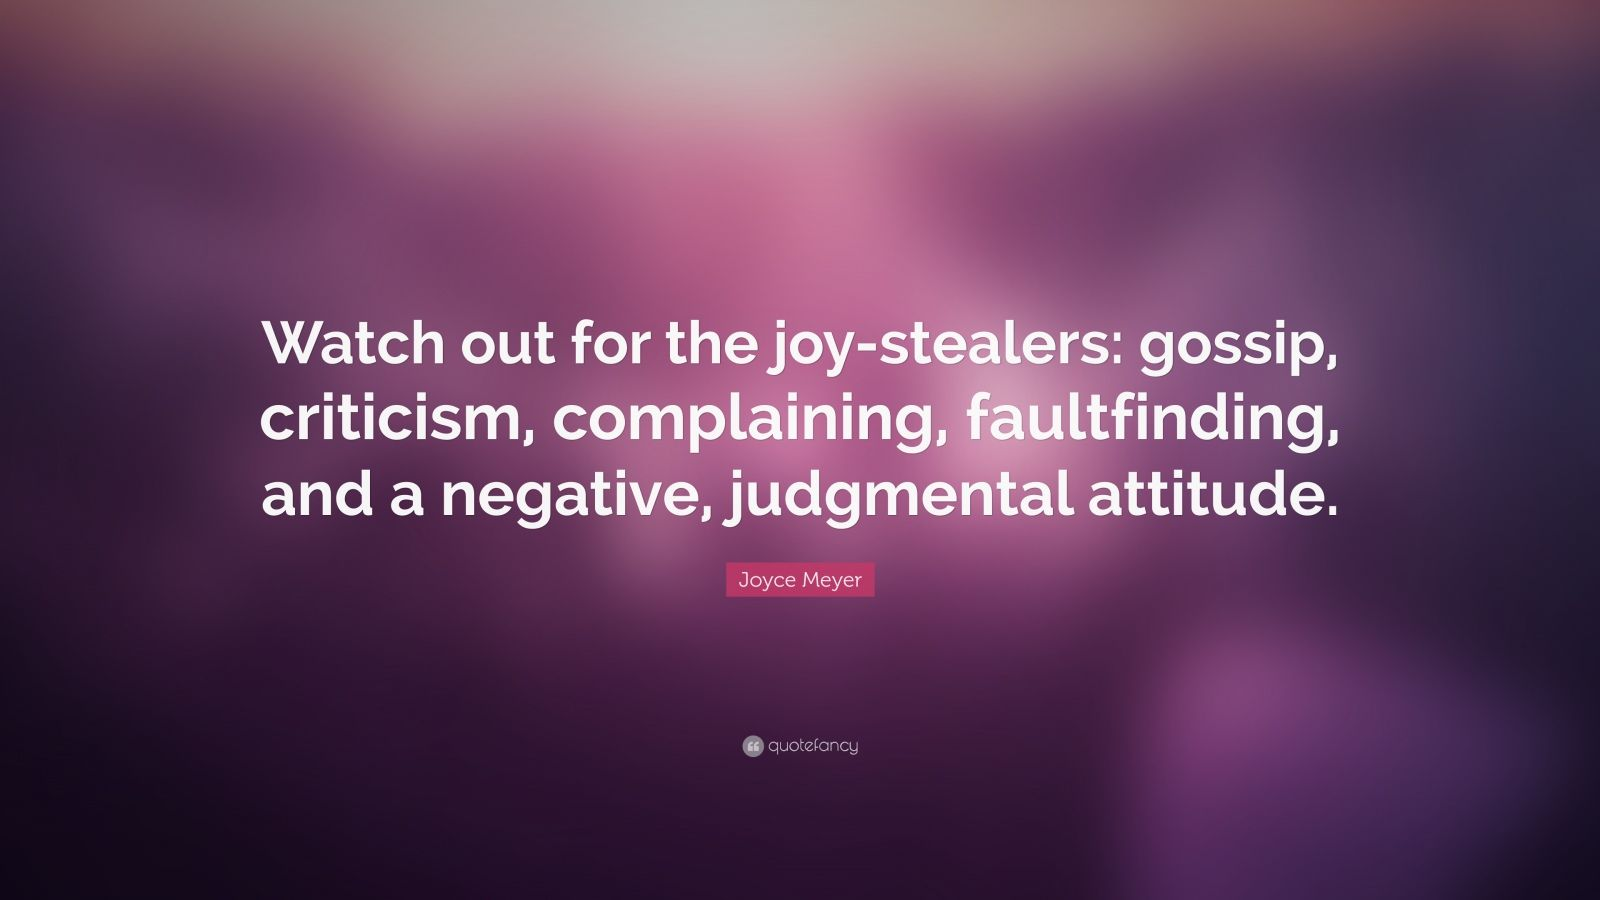 """Joyce Meyer Quote: """"Watch out for the joy-stealers: gossip, criticism, complaining, faultfinding, and a negative, judgmental attitude."""""""